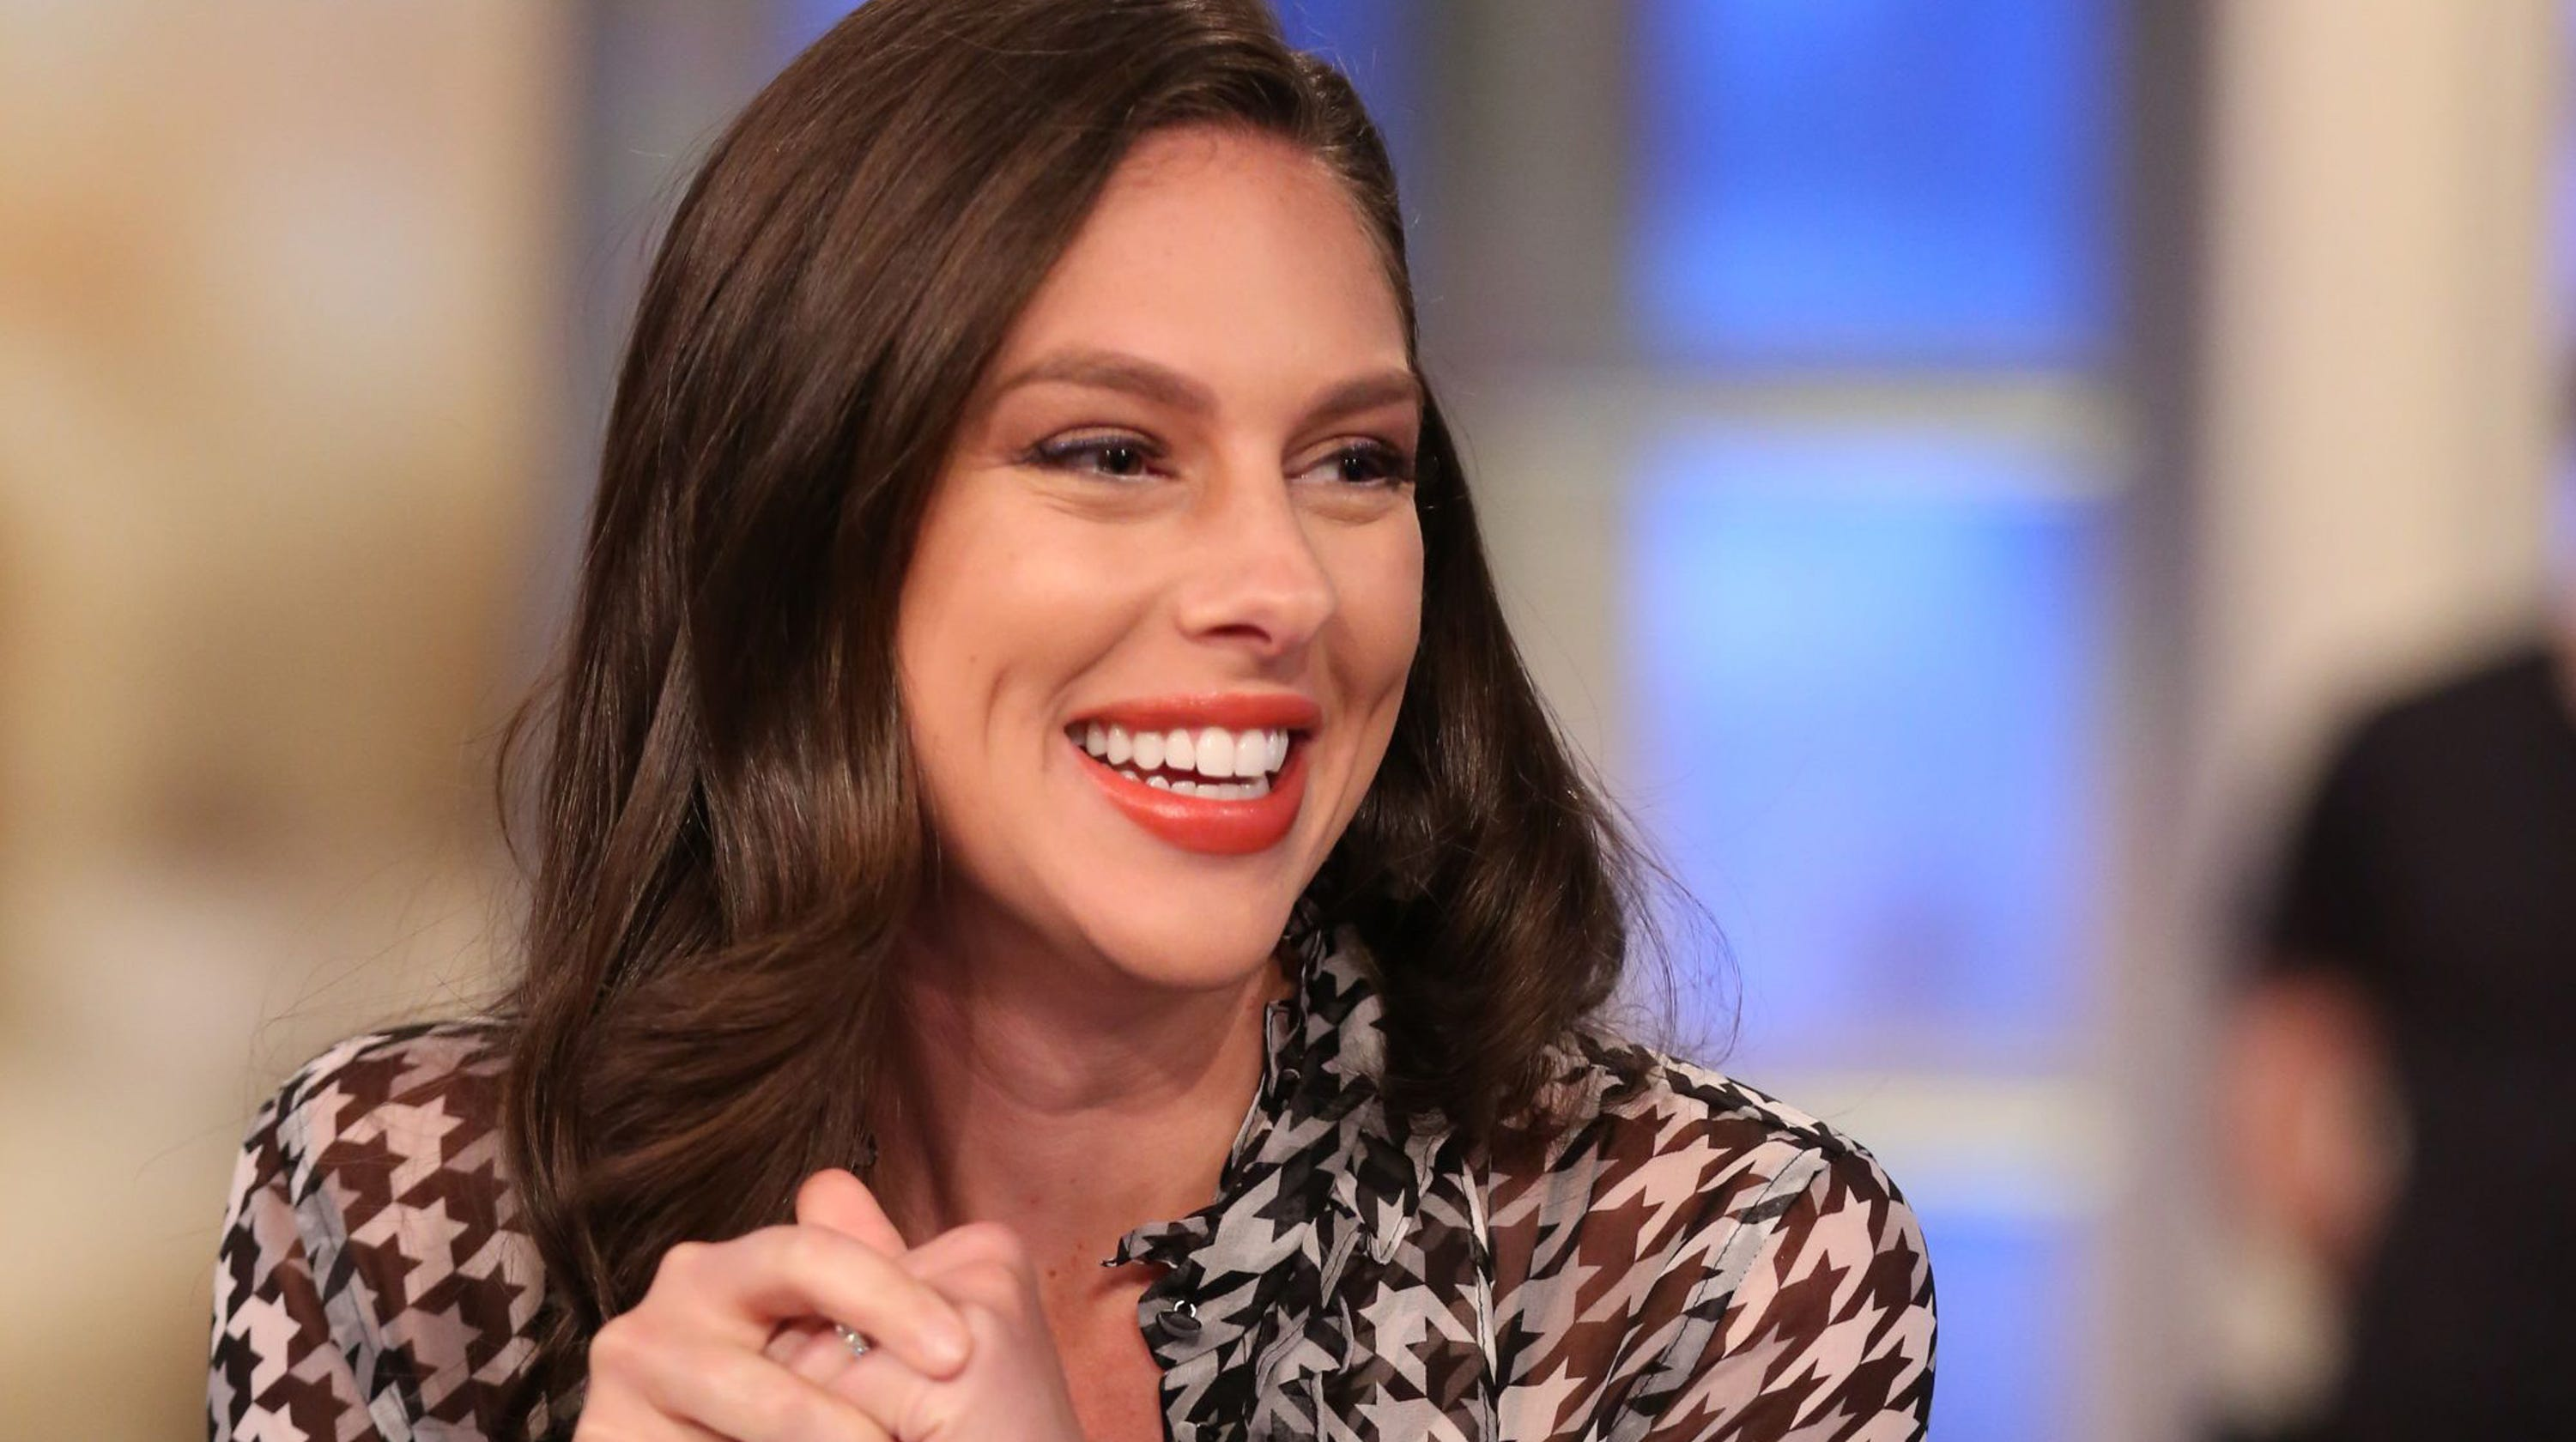 'The View' co-host Abby Huntsman gives birth to twins, a boy and a girl